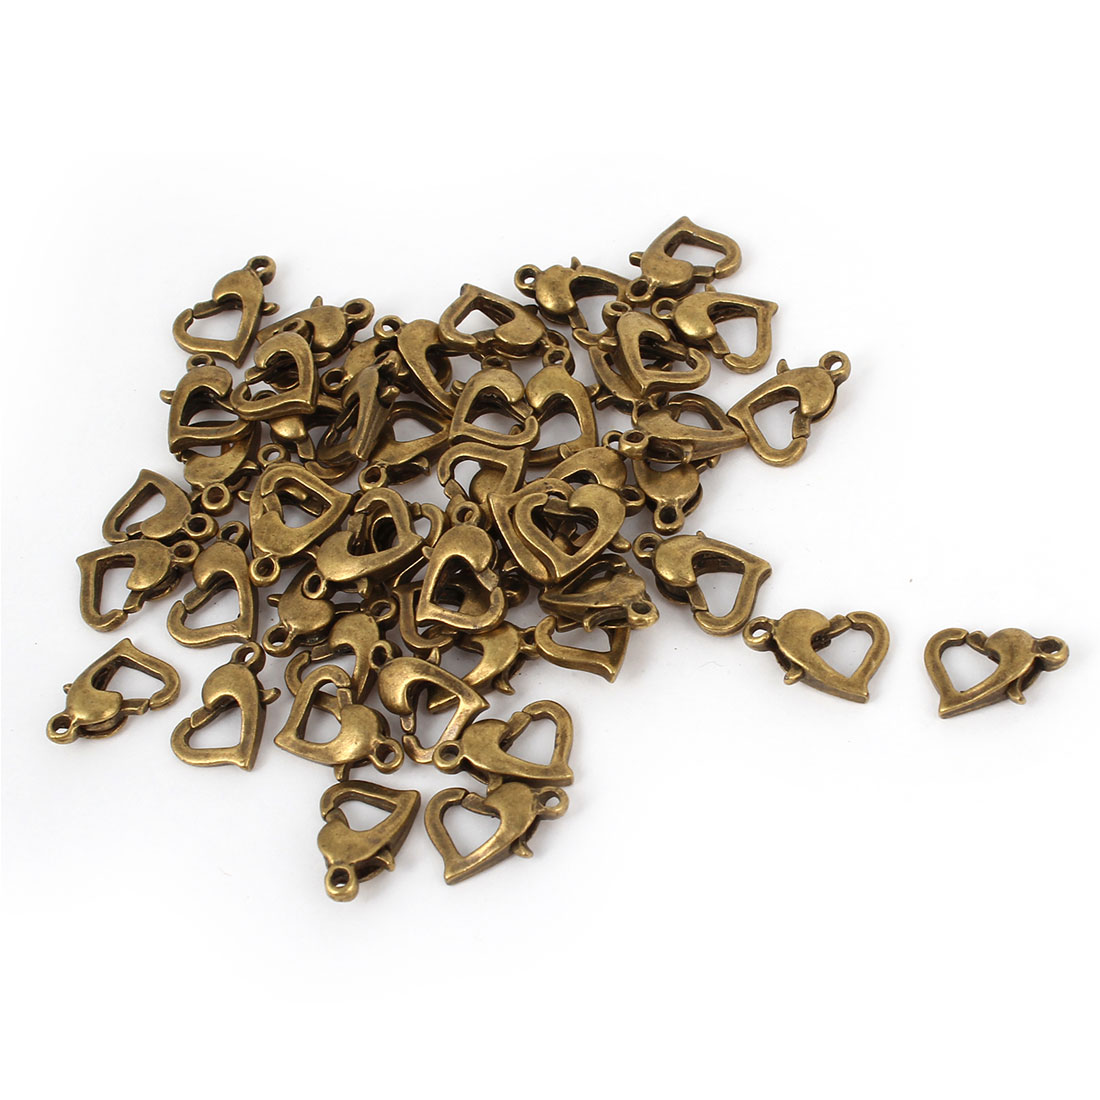 50 Pcs Bronze Tone Heart Design Spring Clasps Jewelry Connector Kits